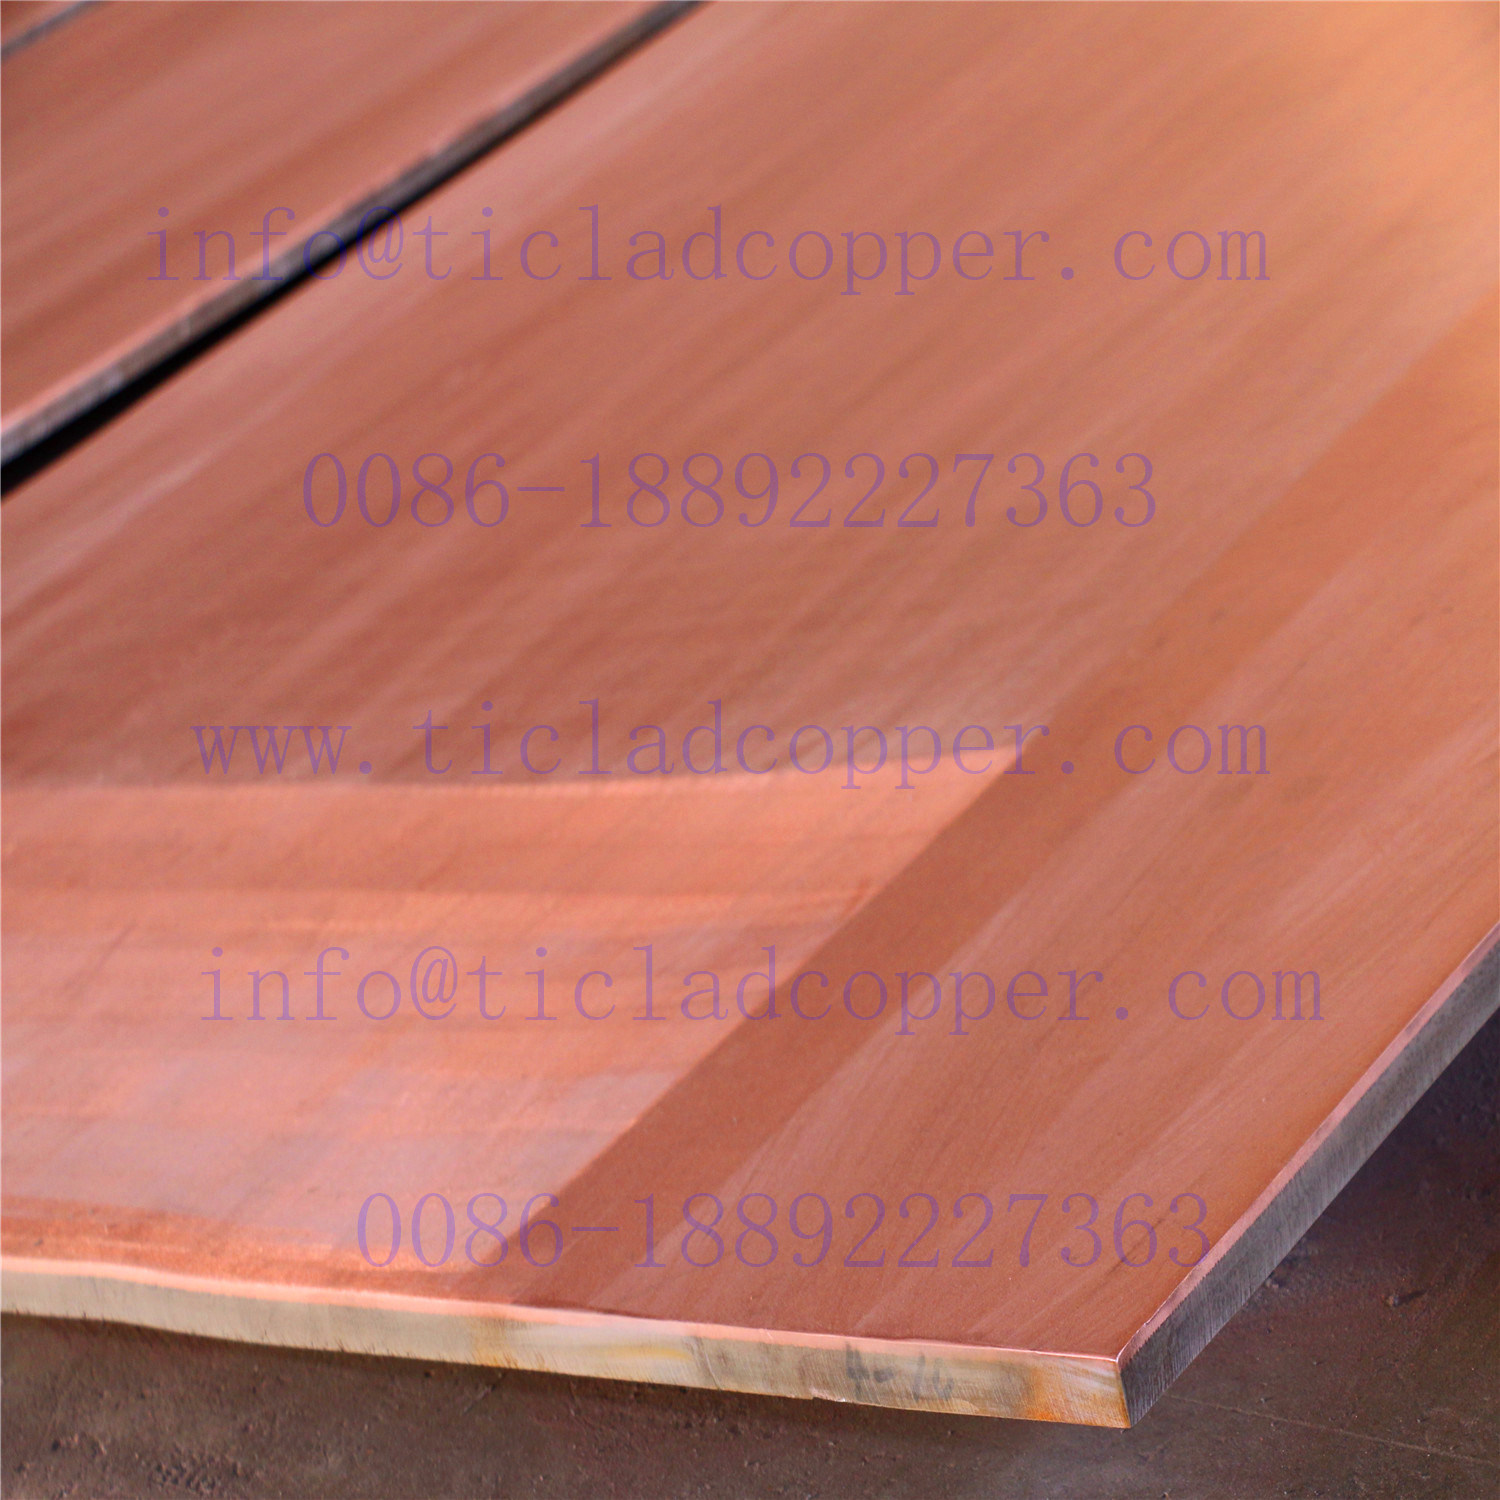 Titanium Clad Copper Mother Sheet/ Ti Clad Copper Cathode Plate